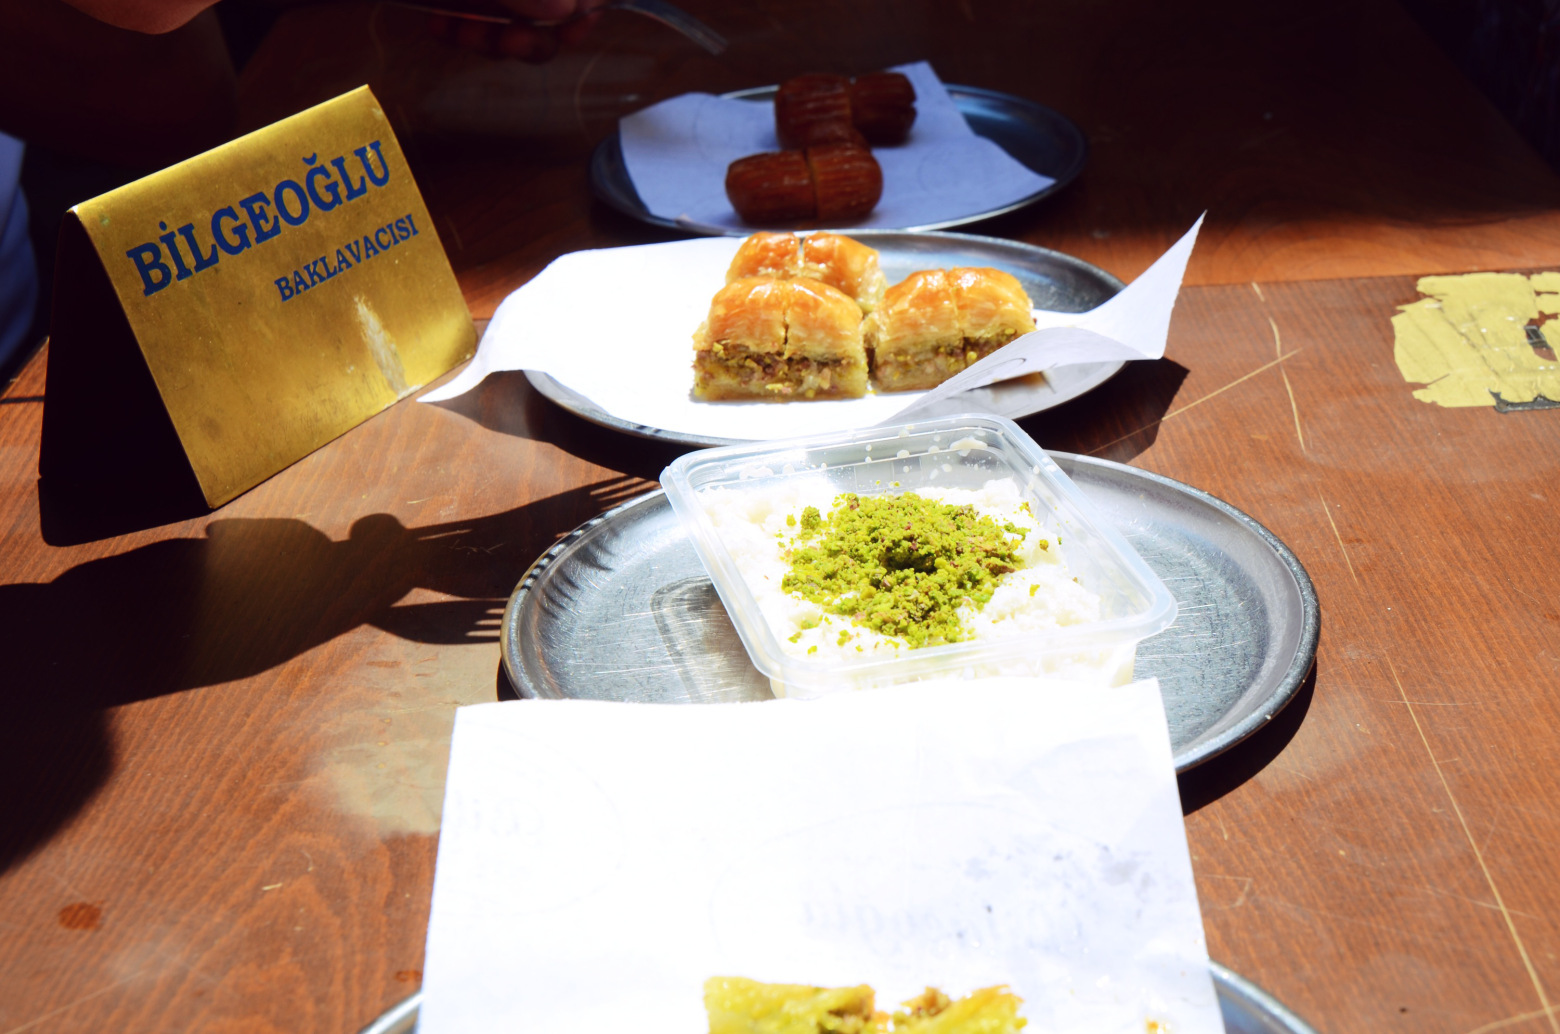 turkish dessert with pistachio on top